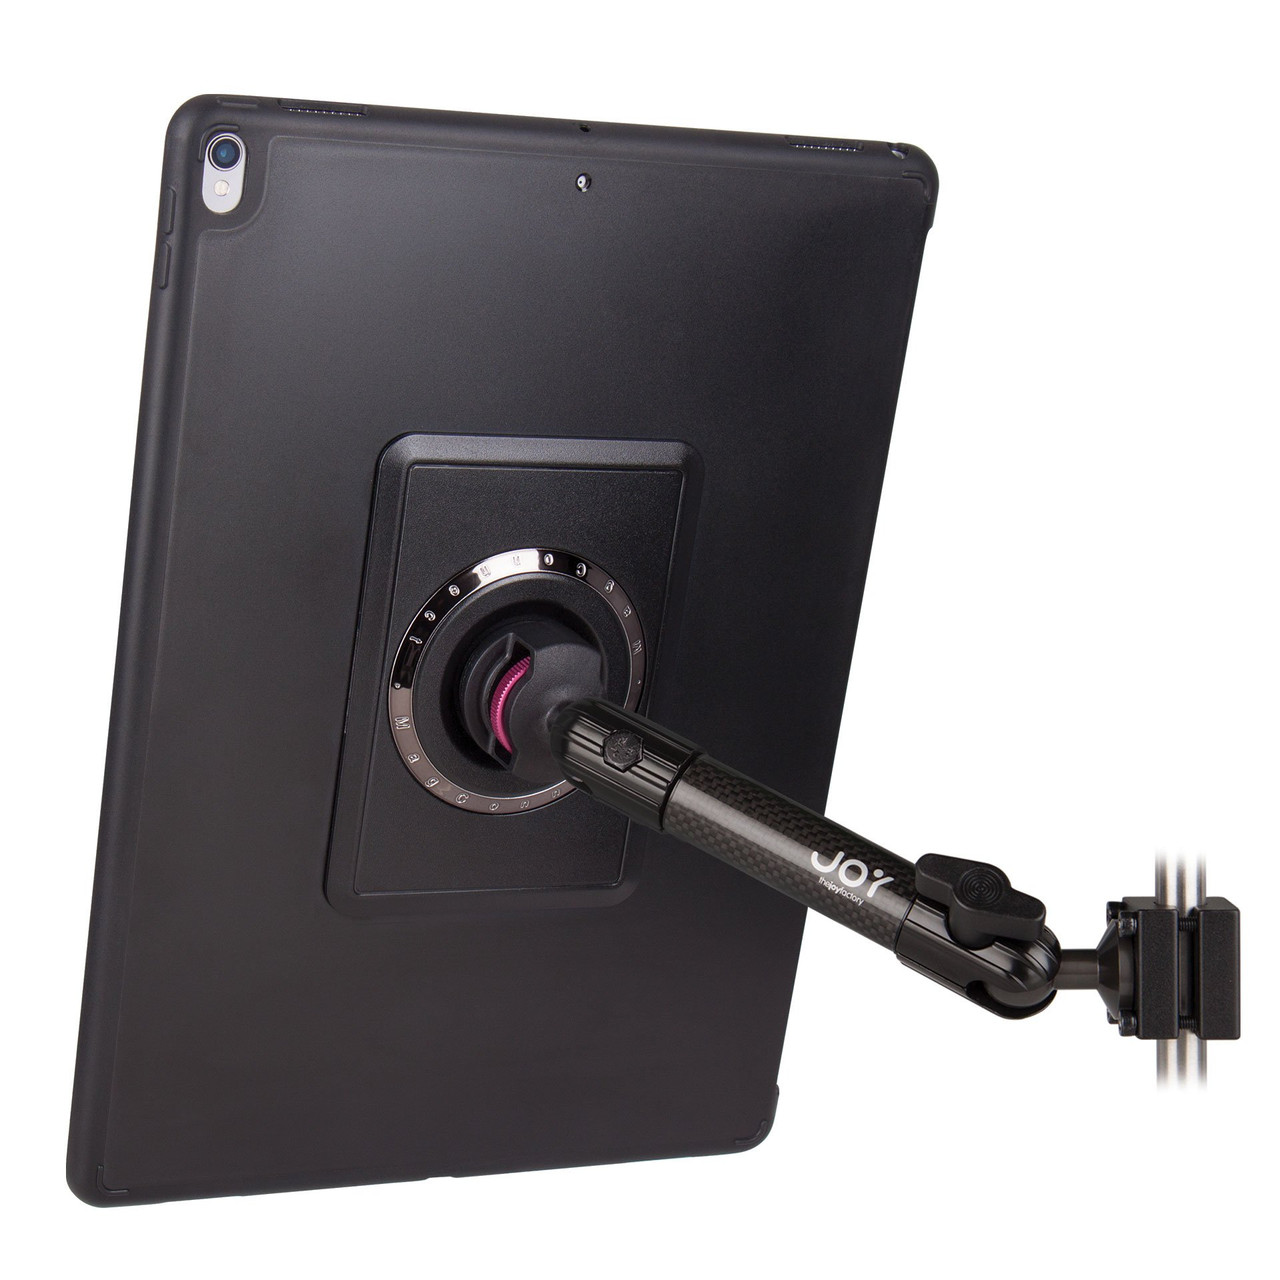 iPad Headrest Mount with Standard Tray for Pad Pro 12.9